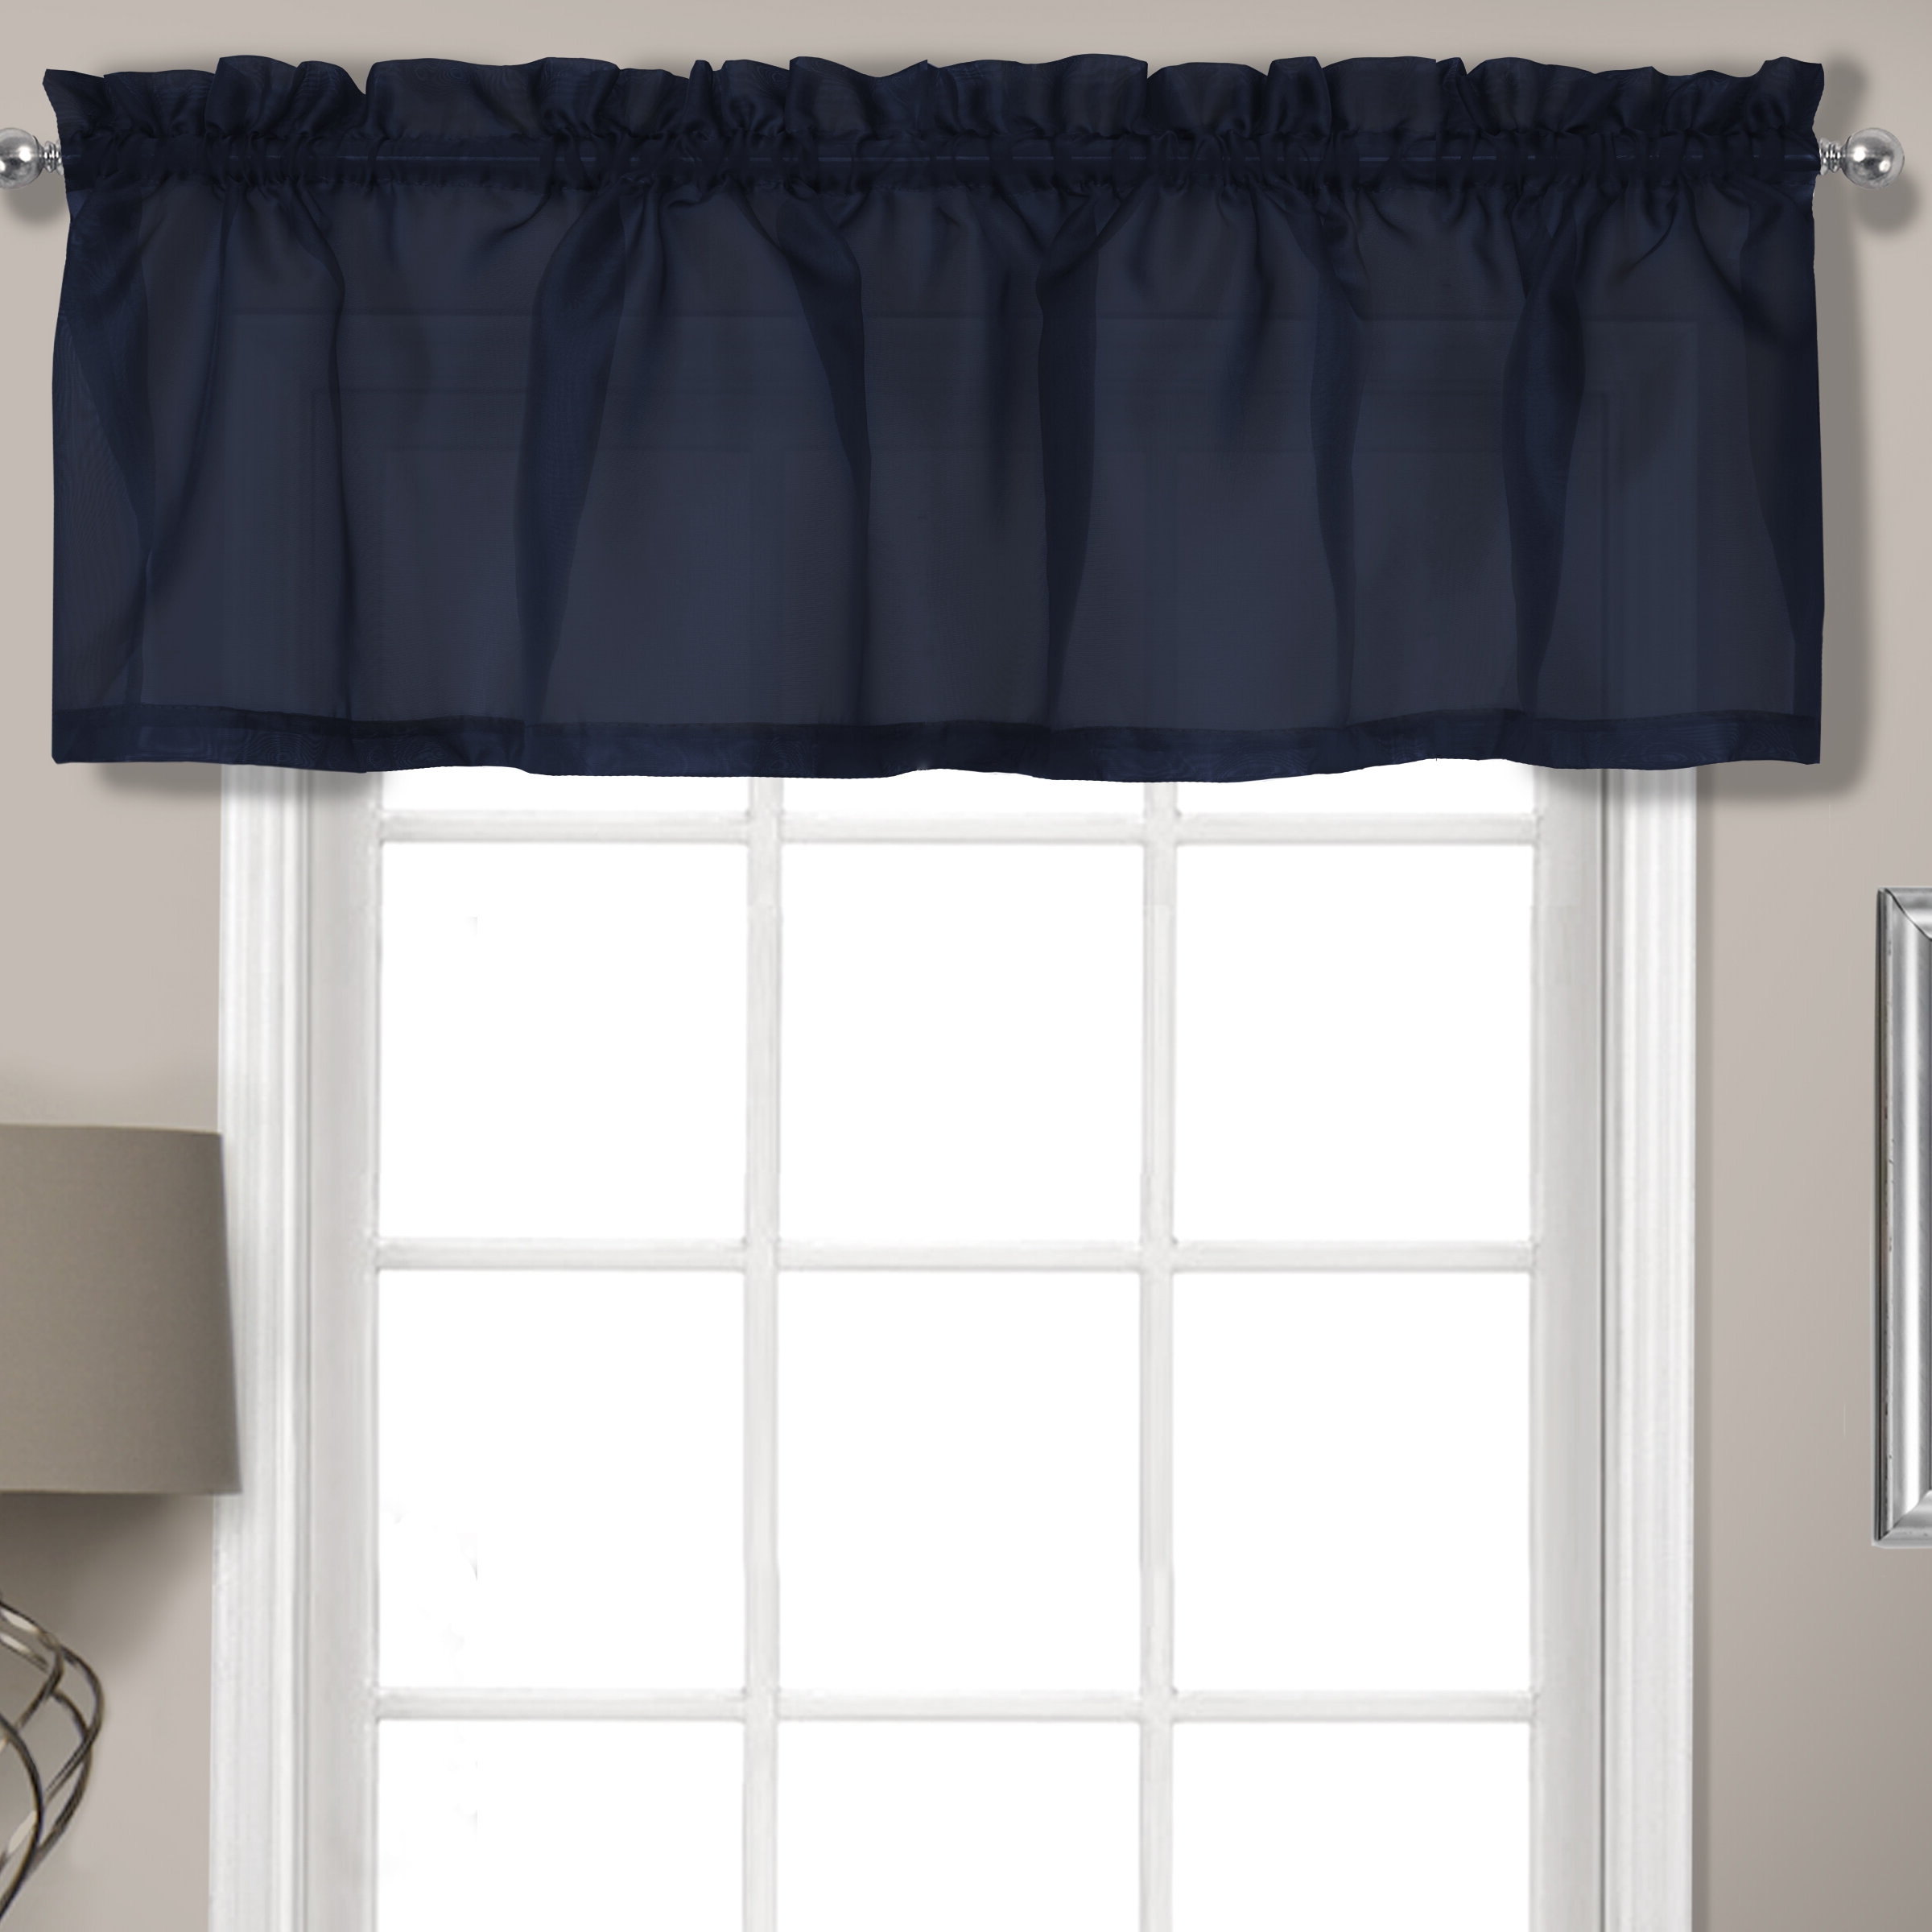 "Favorite Rutherford Sheer Voile Straight Topper 56"" Window Valance Pertaining To Sheer Voile Waterfall Ruffled Tier Single Curtain Panels (View 5 of 20)"